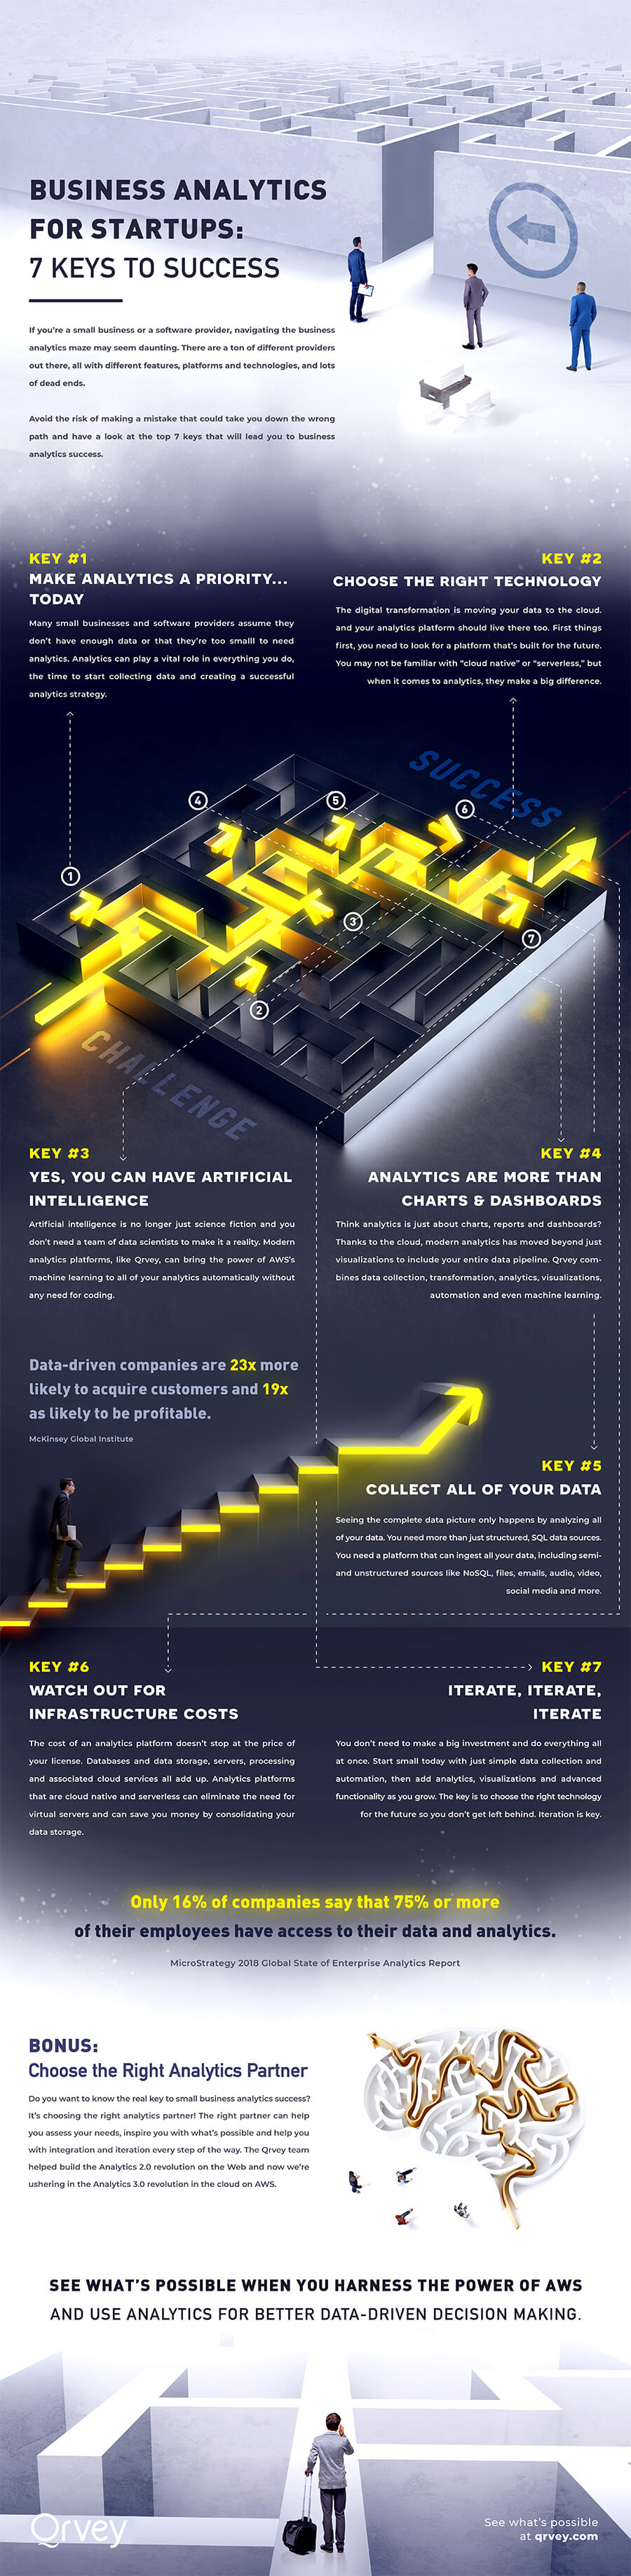 Infographic: Analytics For Startups - 7 Keys To Success Infographic